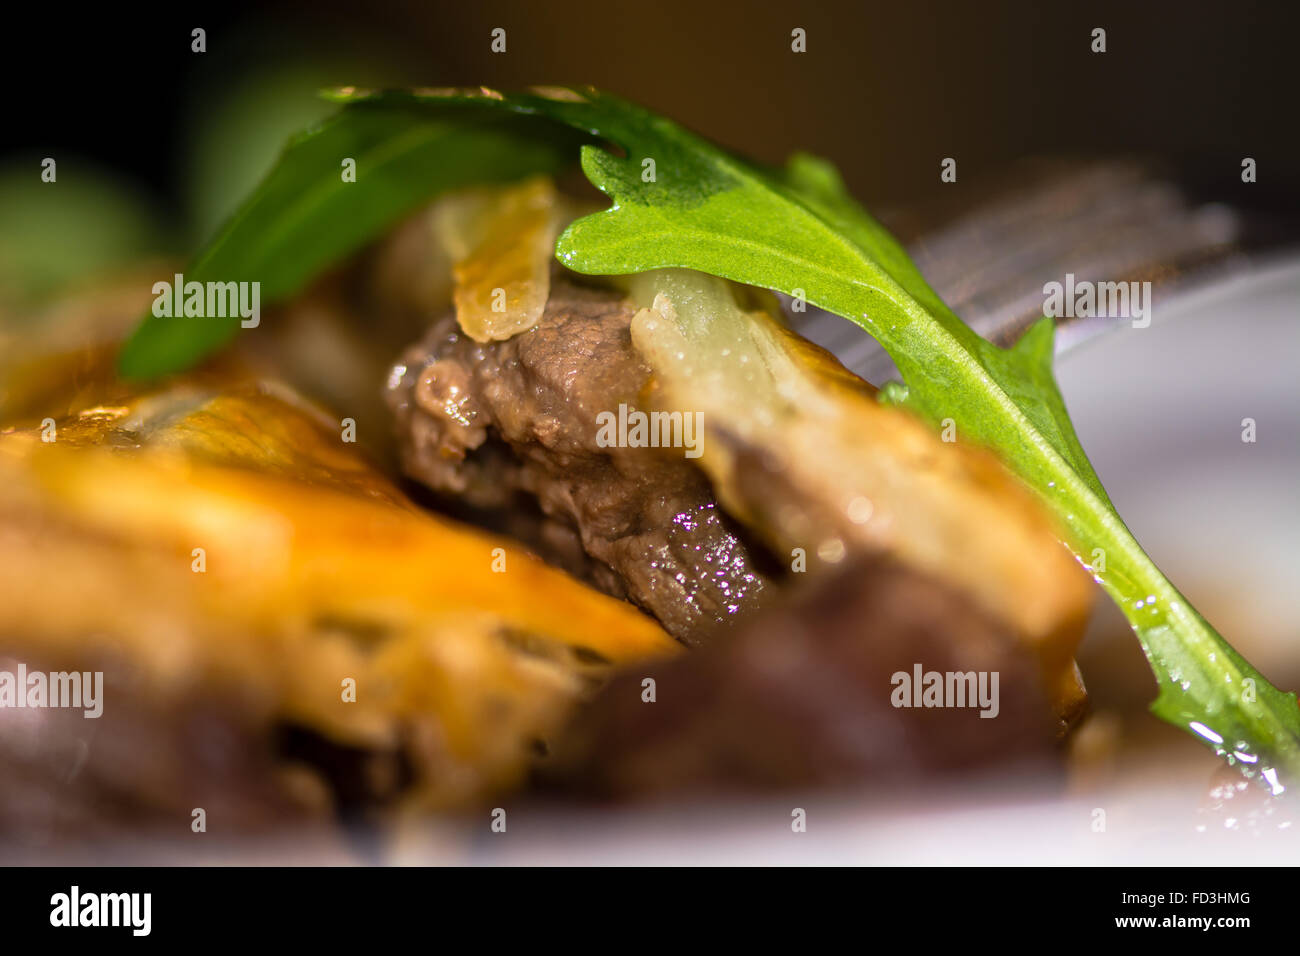 Steak and kidney pie close up of meat with rocket leaf. French restaurant cuisine influenced by traditional English - Stock Image